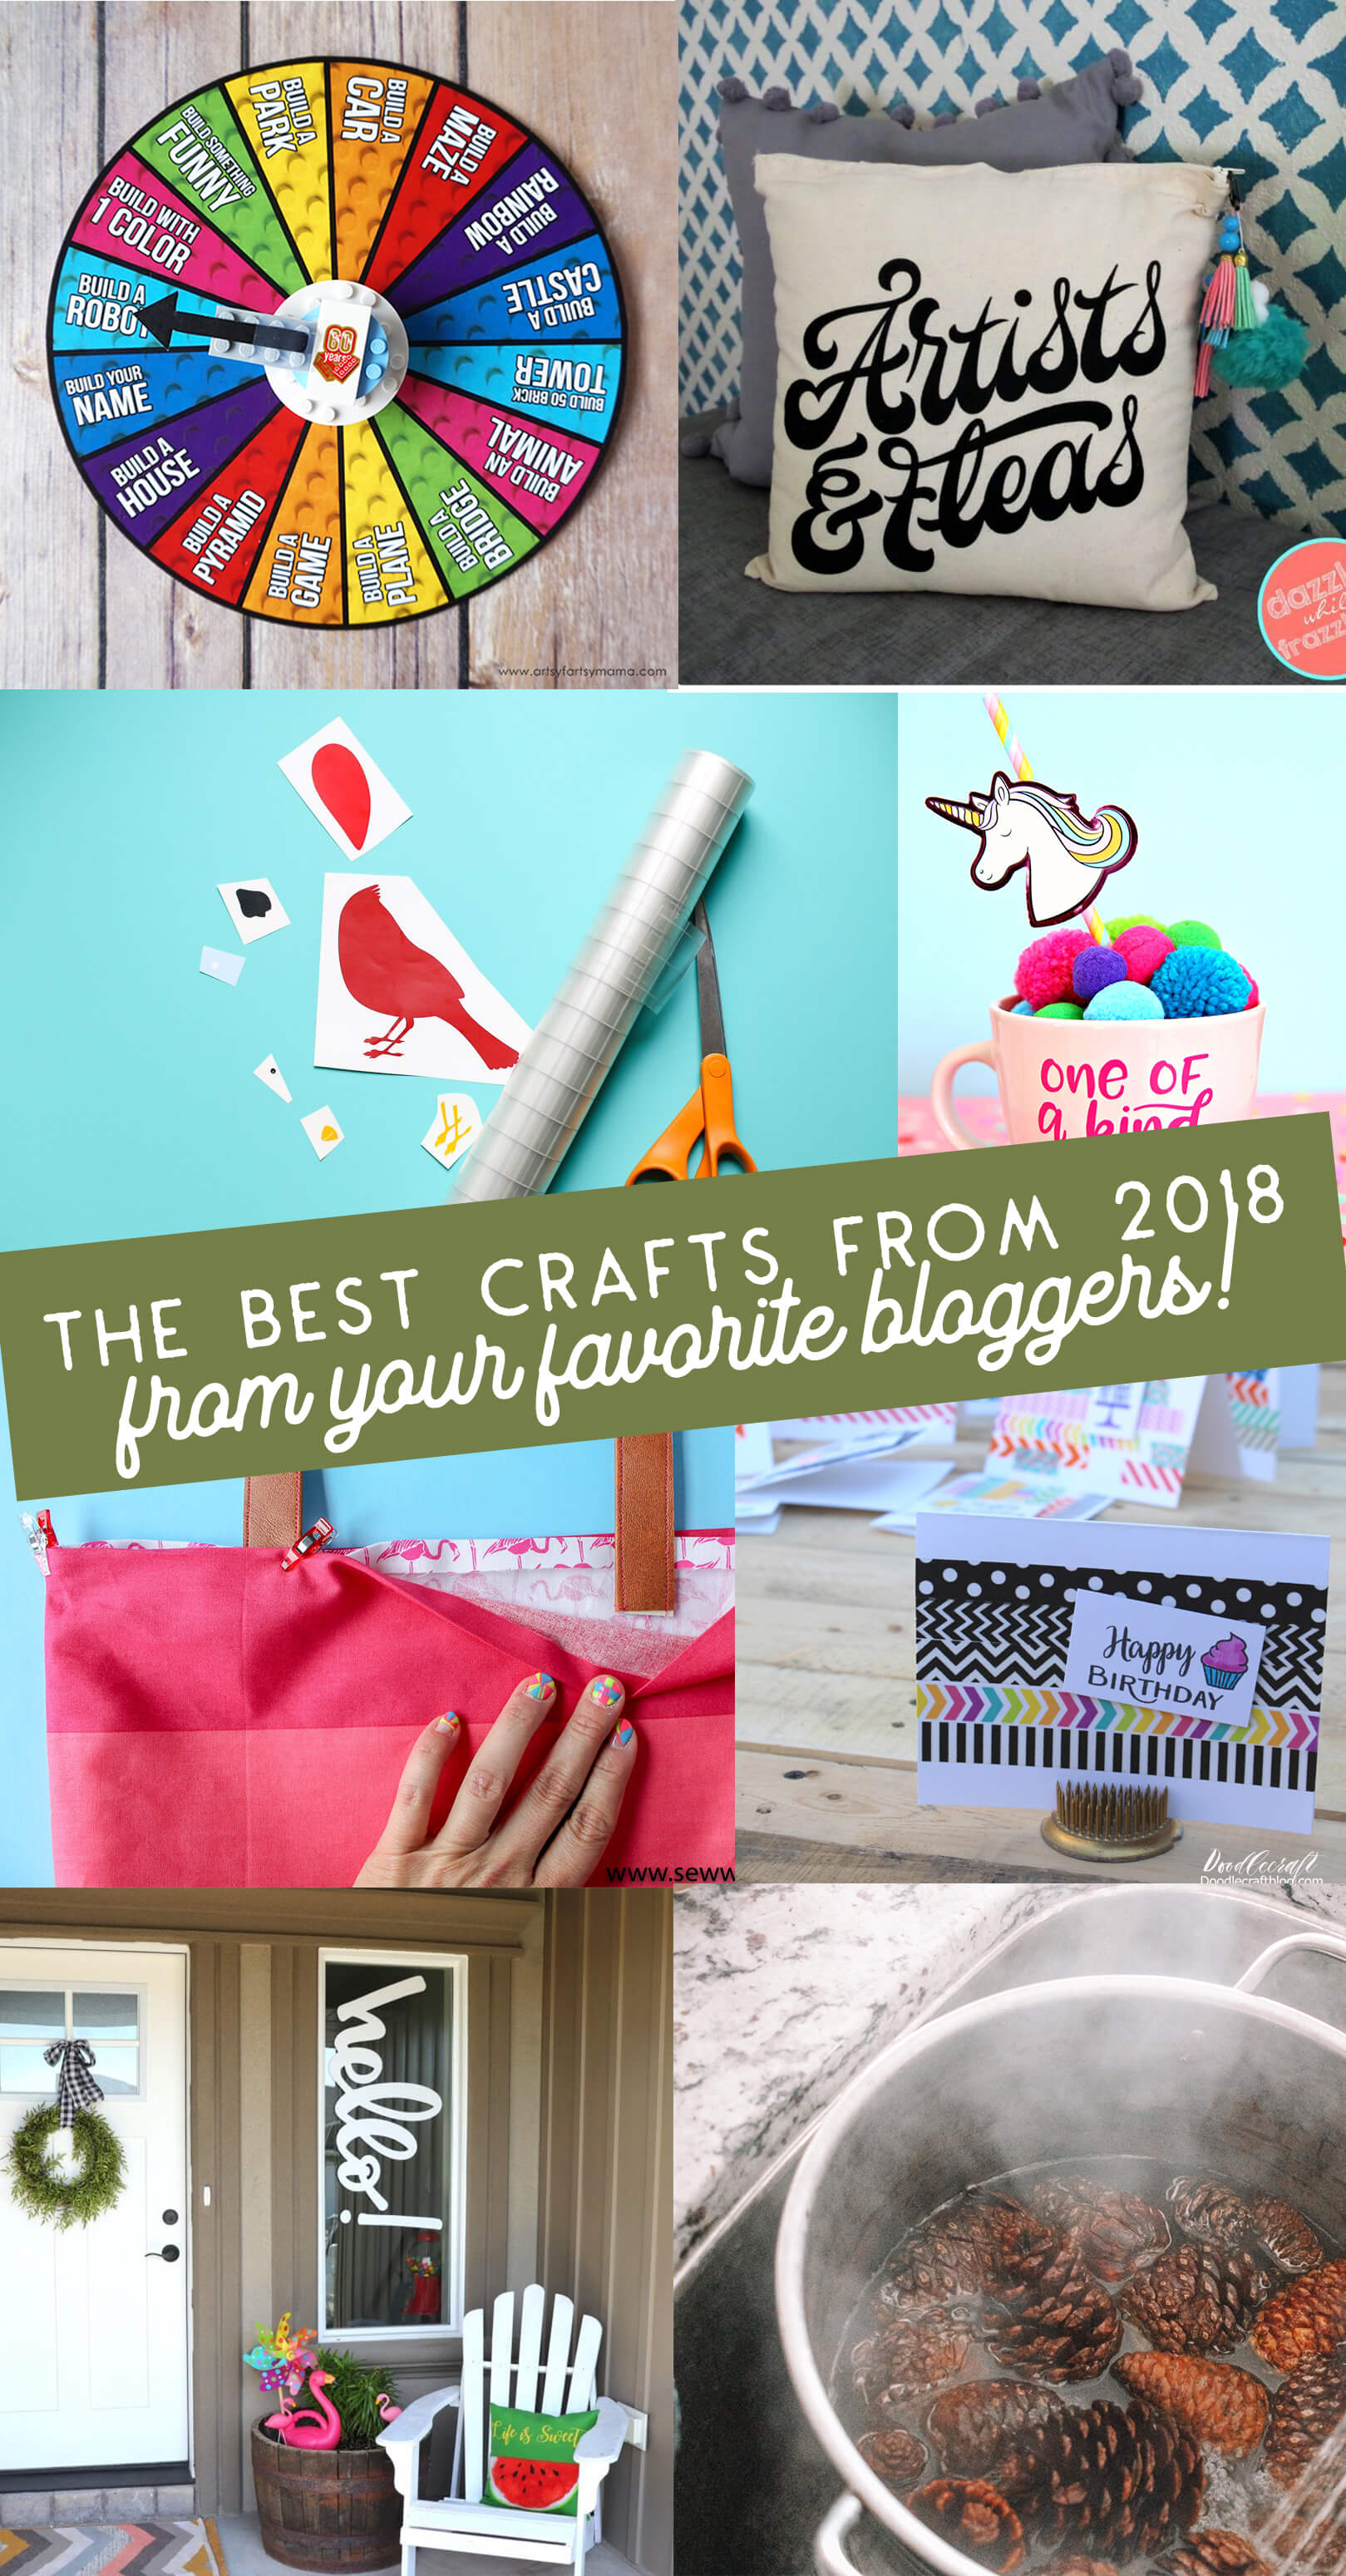 The Best Crafts of 2018 from Your Favorite Bloggers.